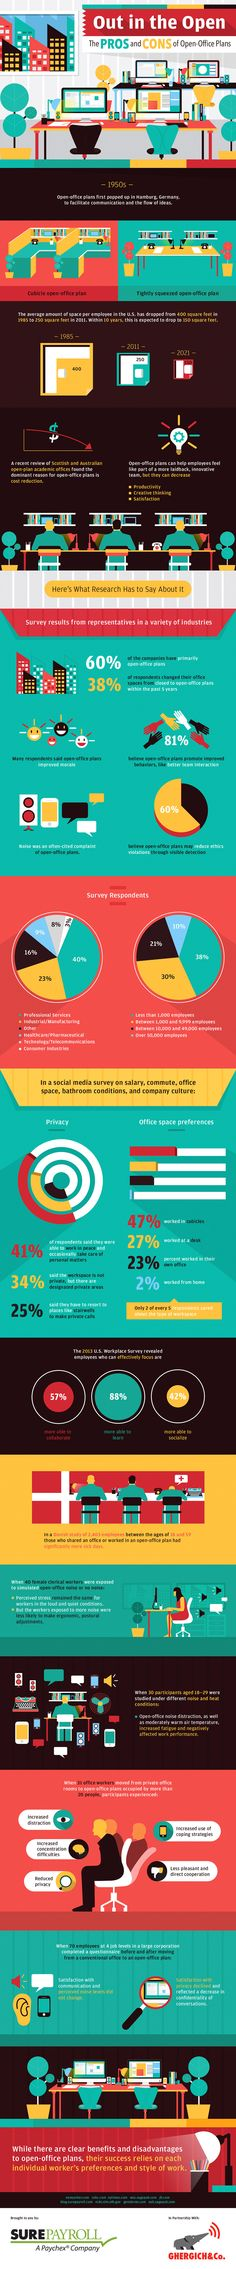 Out in the Open: The Pros and Cons of Open-Plan Offices Infographic